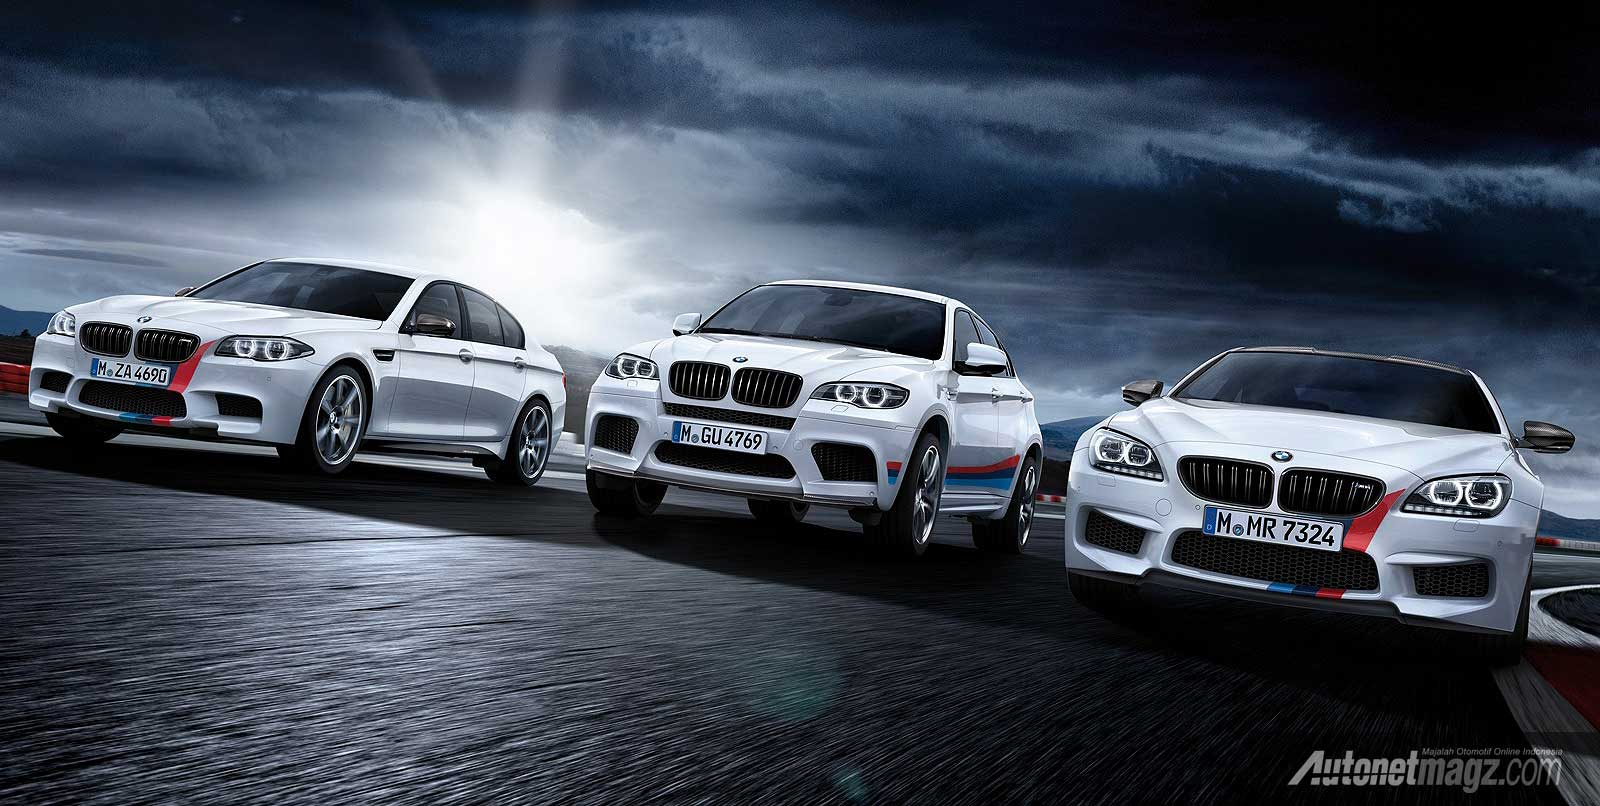 BMW M5, X6M, M6 M Performance